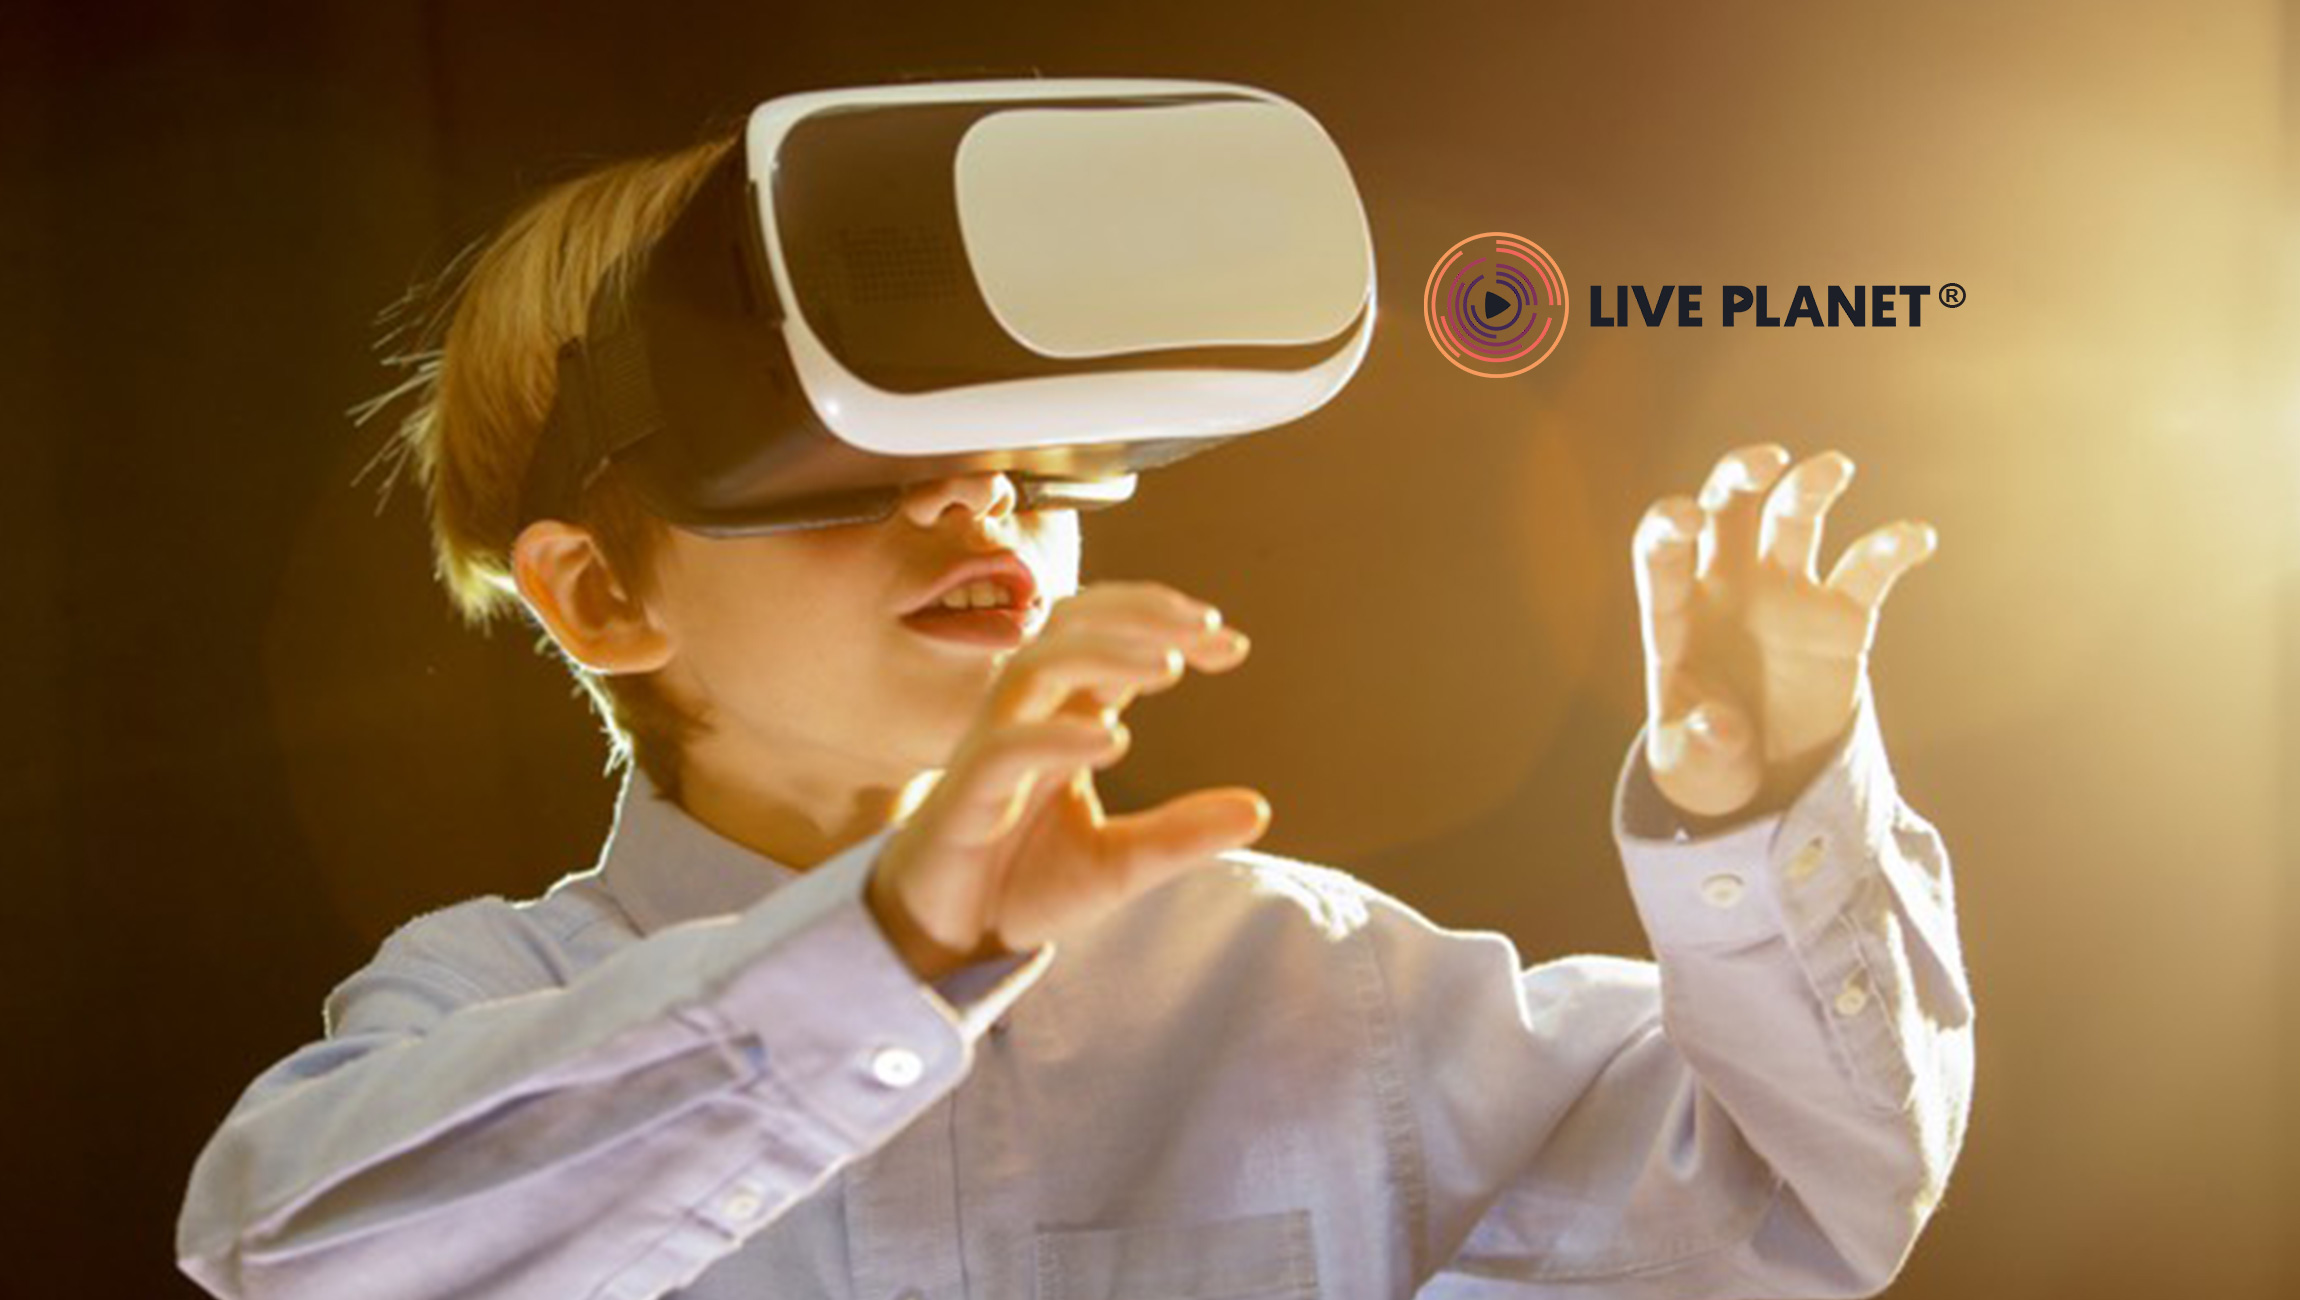 Live Plan to Launch Blockchain-Based Virtual Reality Network